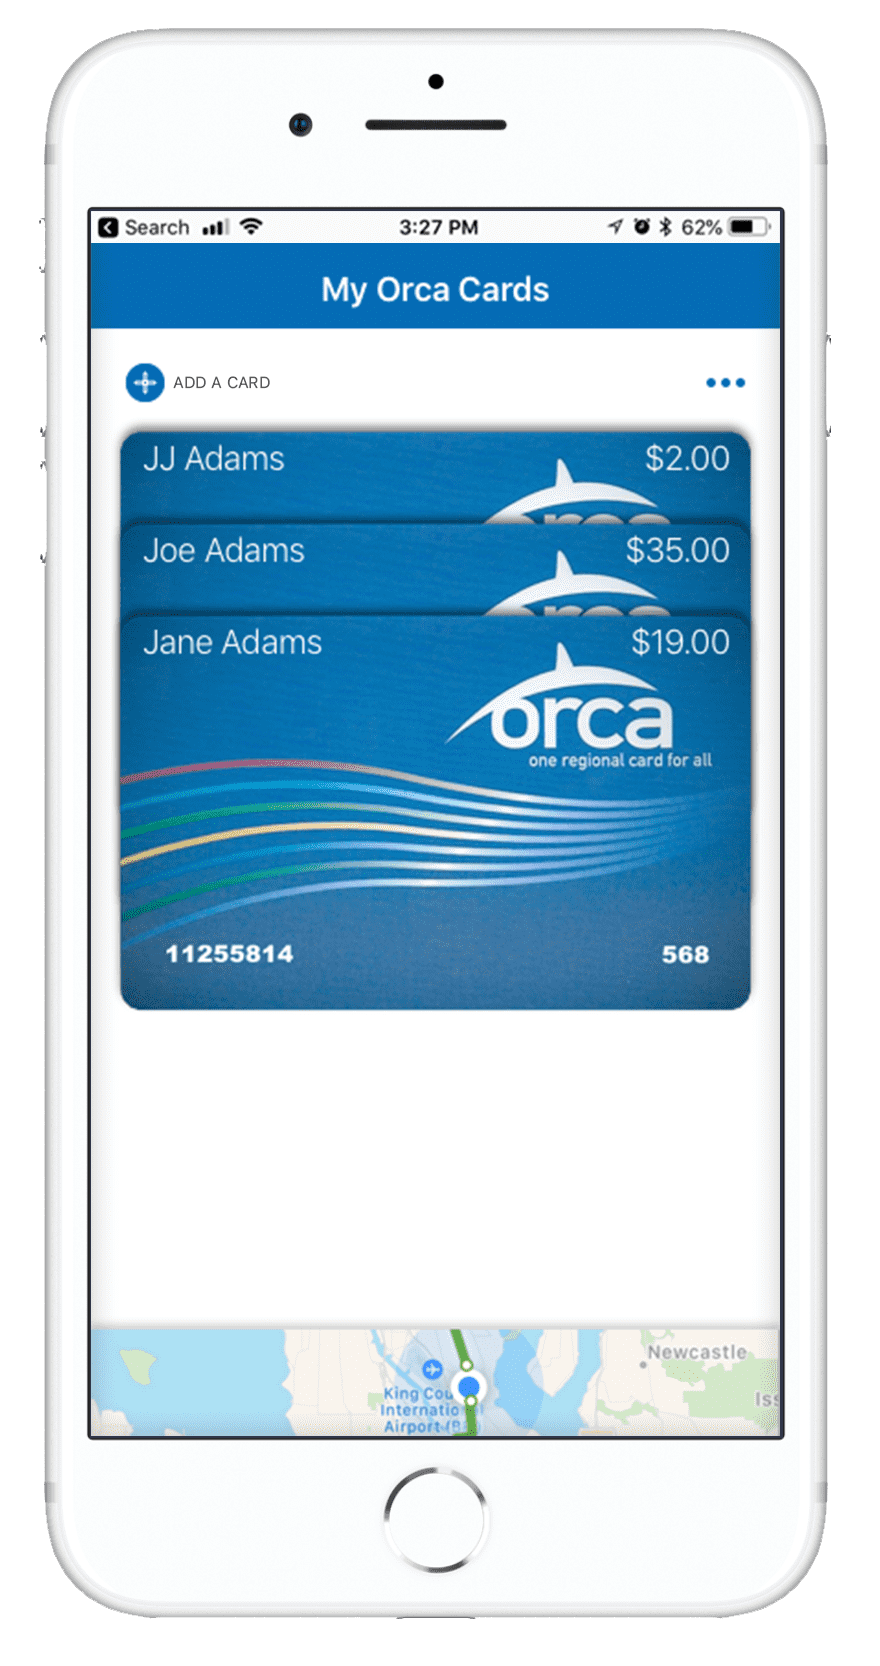 Orca Card 2 - Home - Map